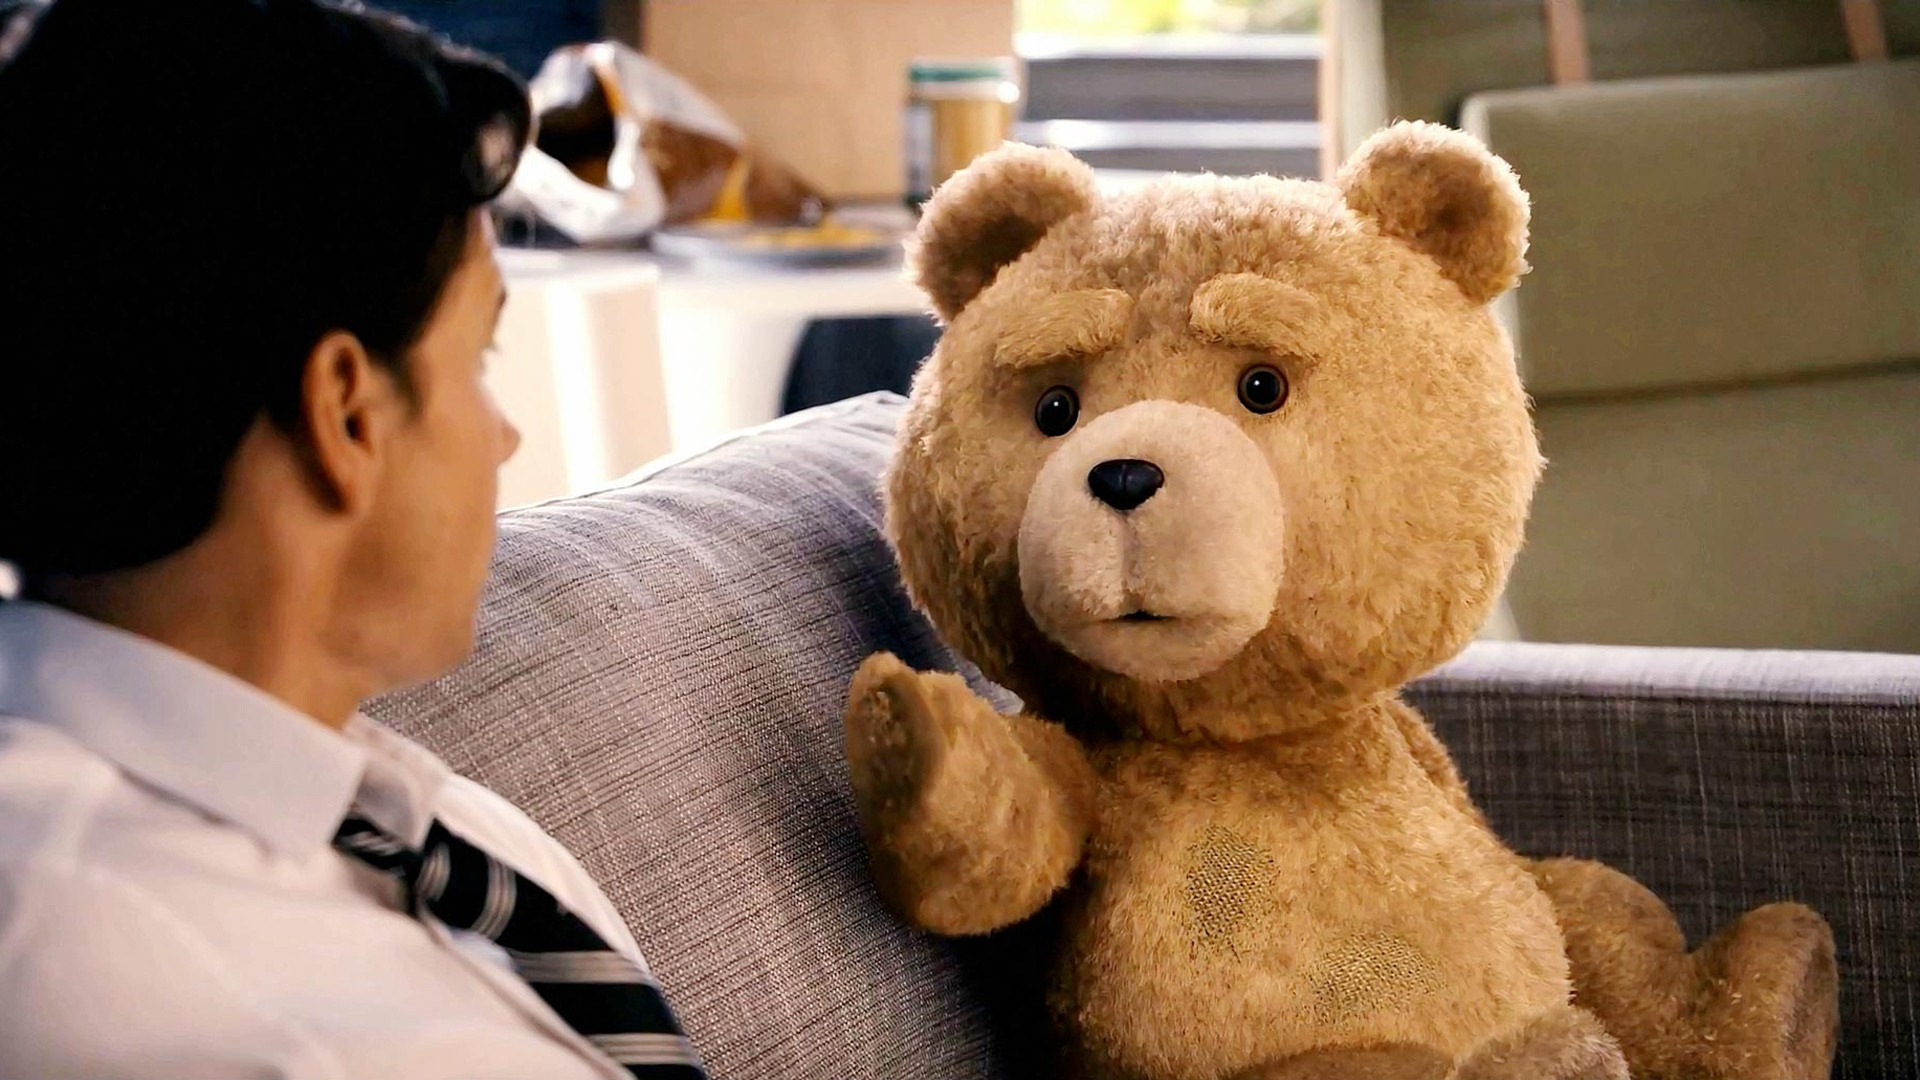 ted 2012 hd movie wallpapers #8 - 1920x1080 wallpaper download - ted